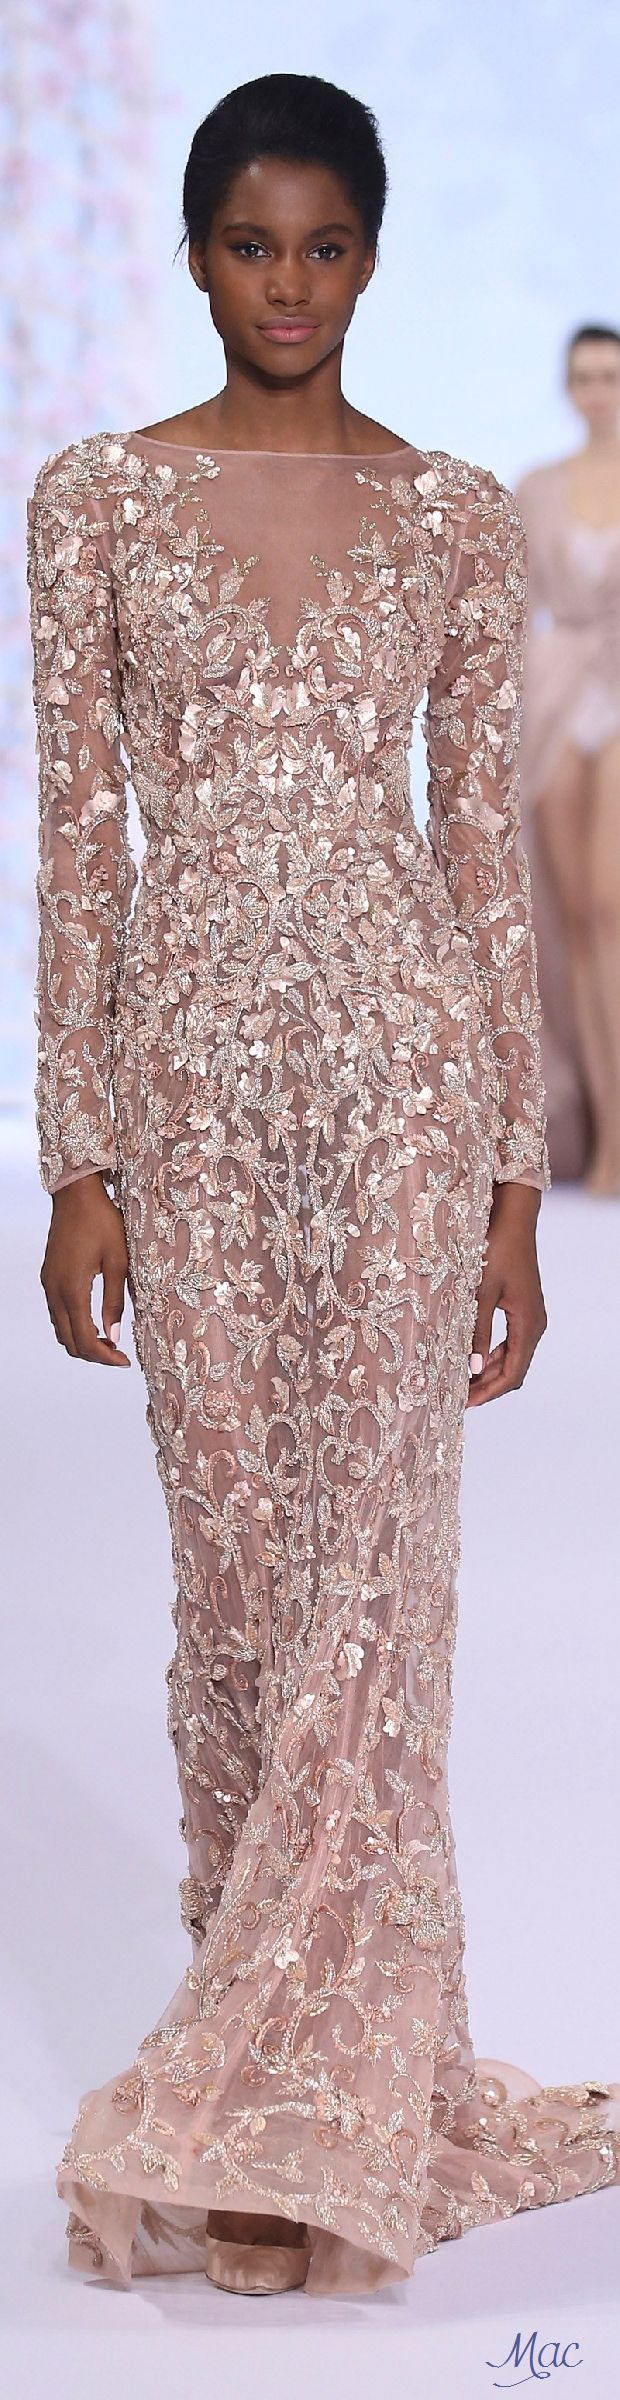 If I were going to a spring ball, this is what I'd wear. Spring 2016 Haute Couture Ralph & Russo